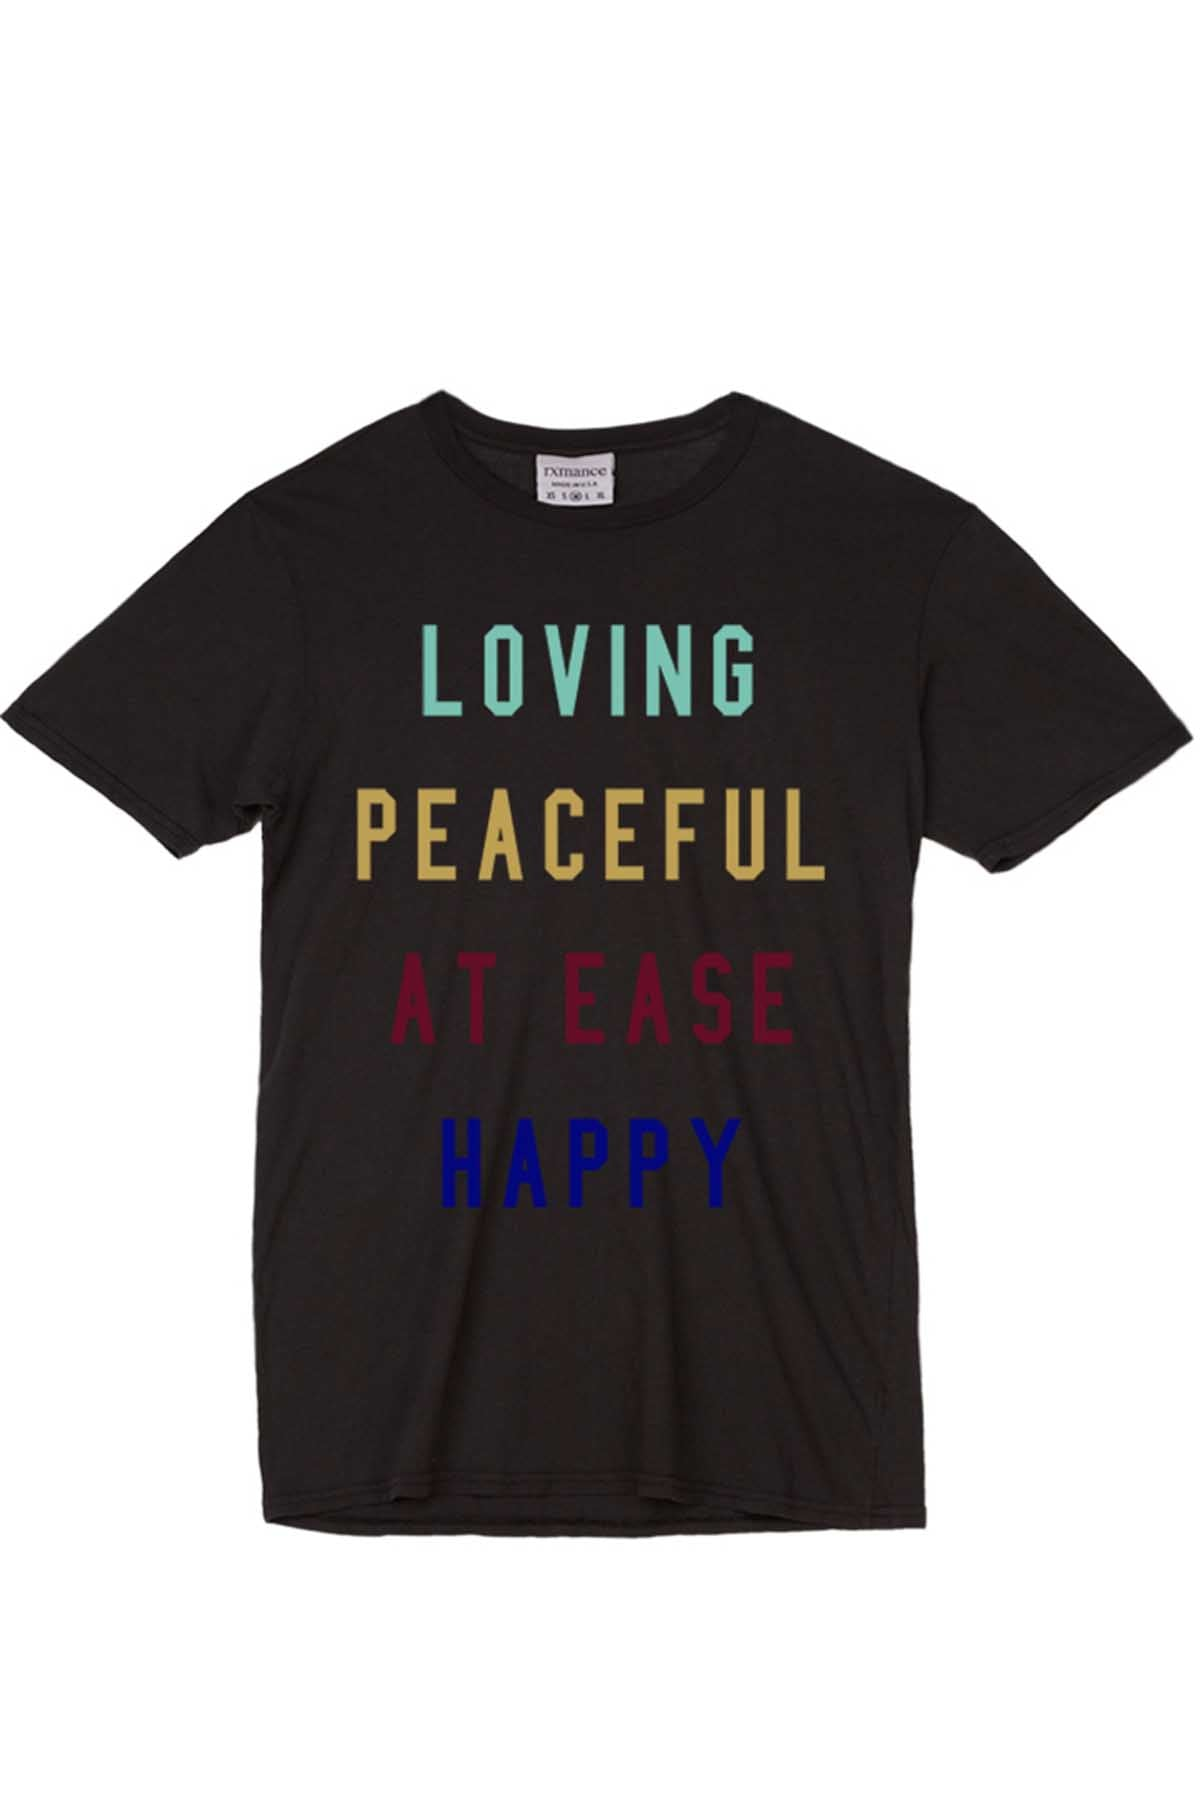 Rxmance Unisex Black Peaceful Crew Tee